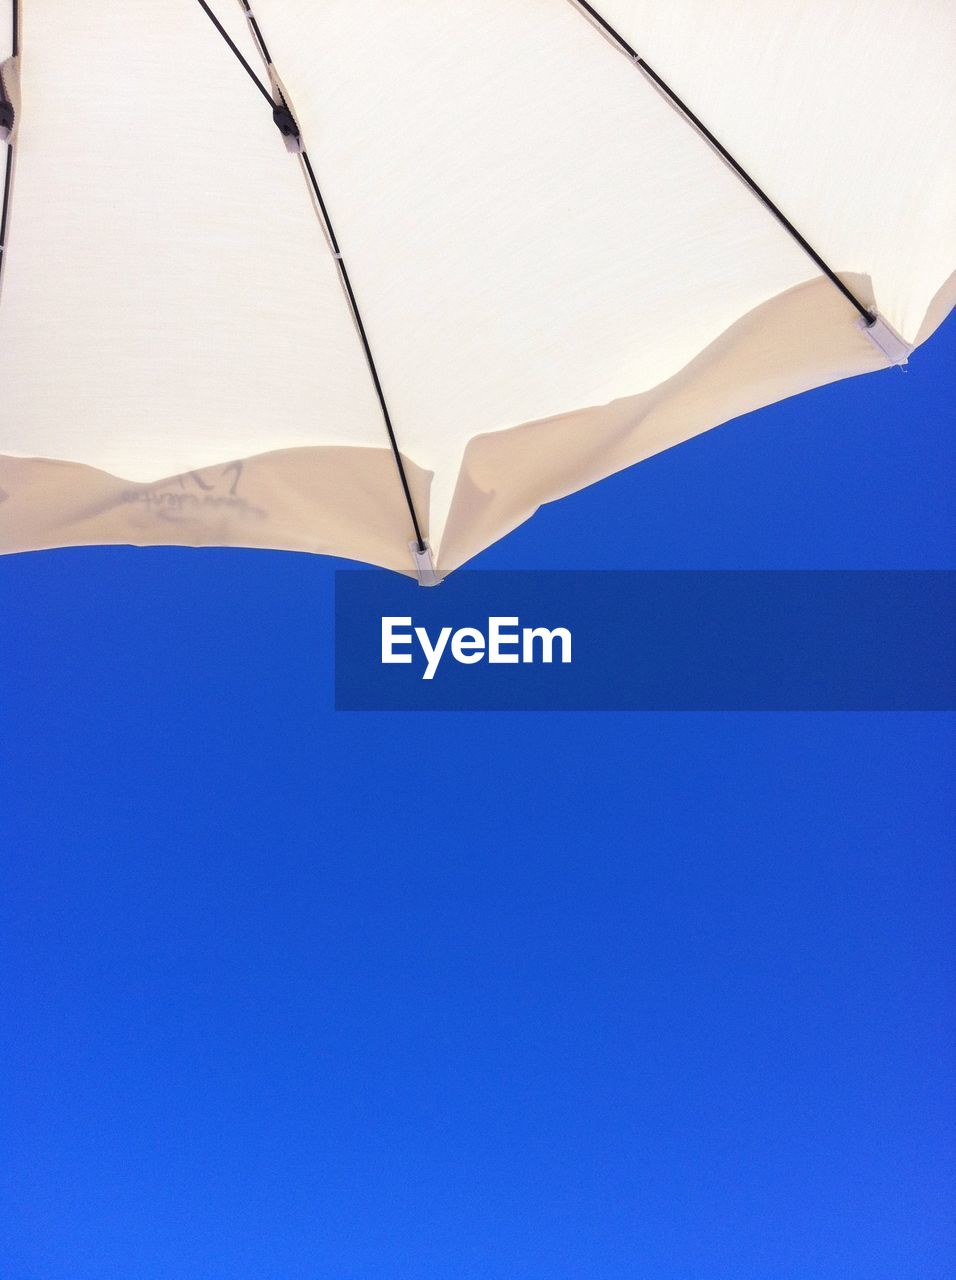 blue, umbrella, shade, clear sky, sky, beach umbrella, protection, copy space, parasol, security, low angle view, no people, sunshade, day, nature, outdoors, close-up, shelter, safety